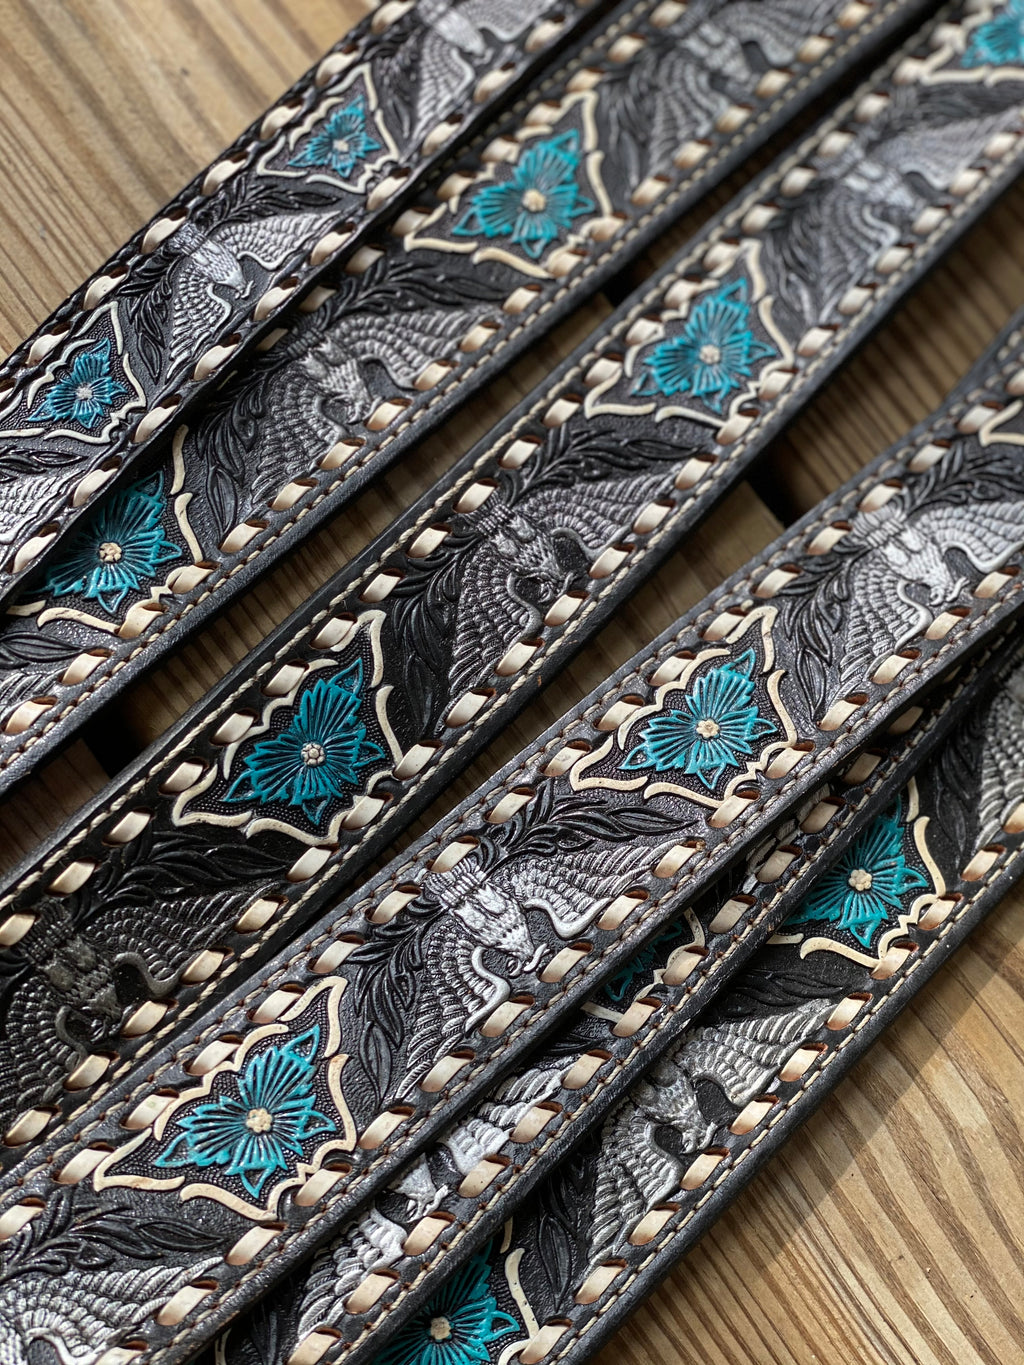 Vintage BuCkStiTCh Black Eagle Belt